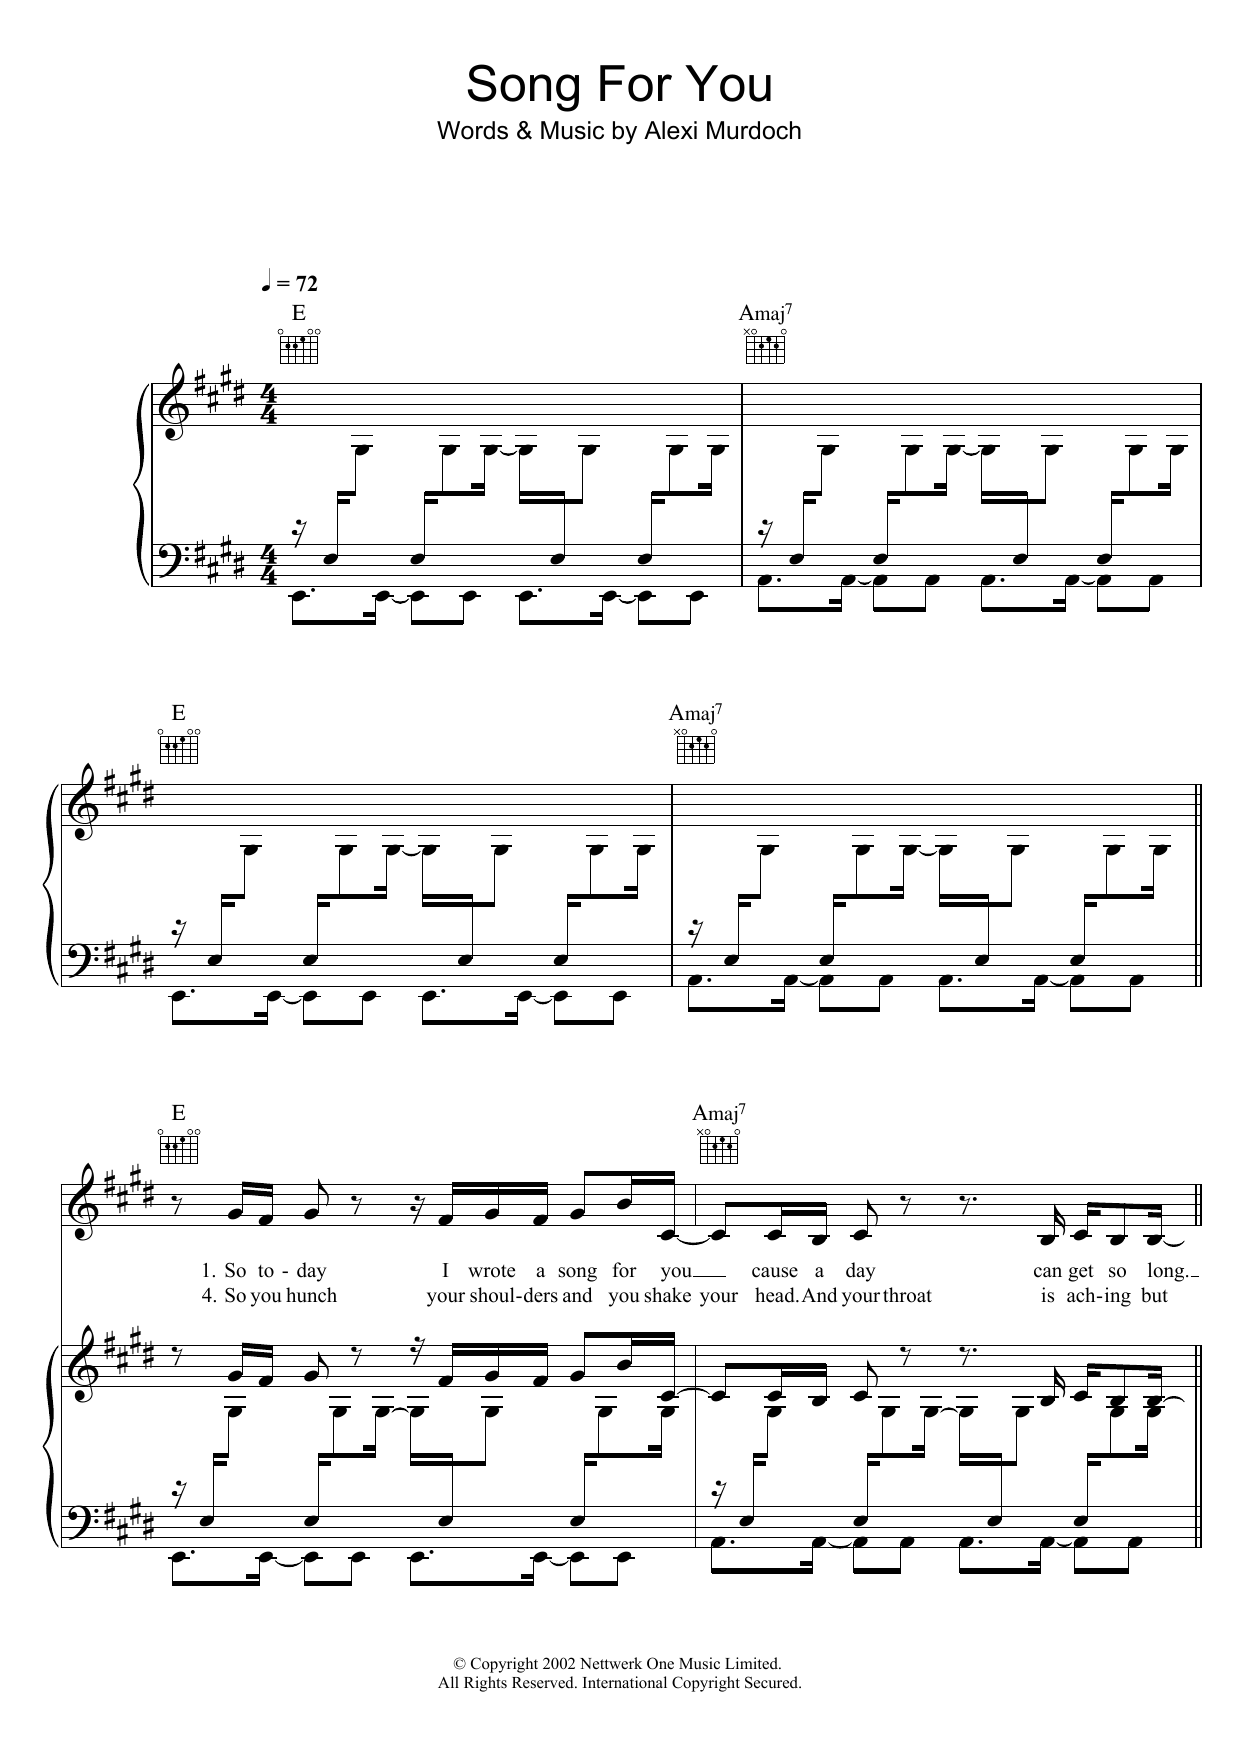 Song For You Sheet Music